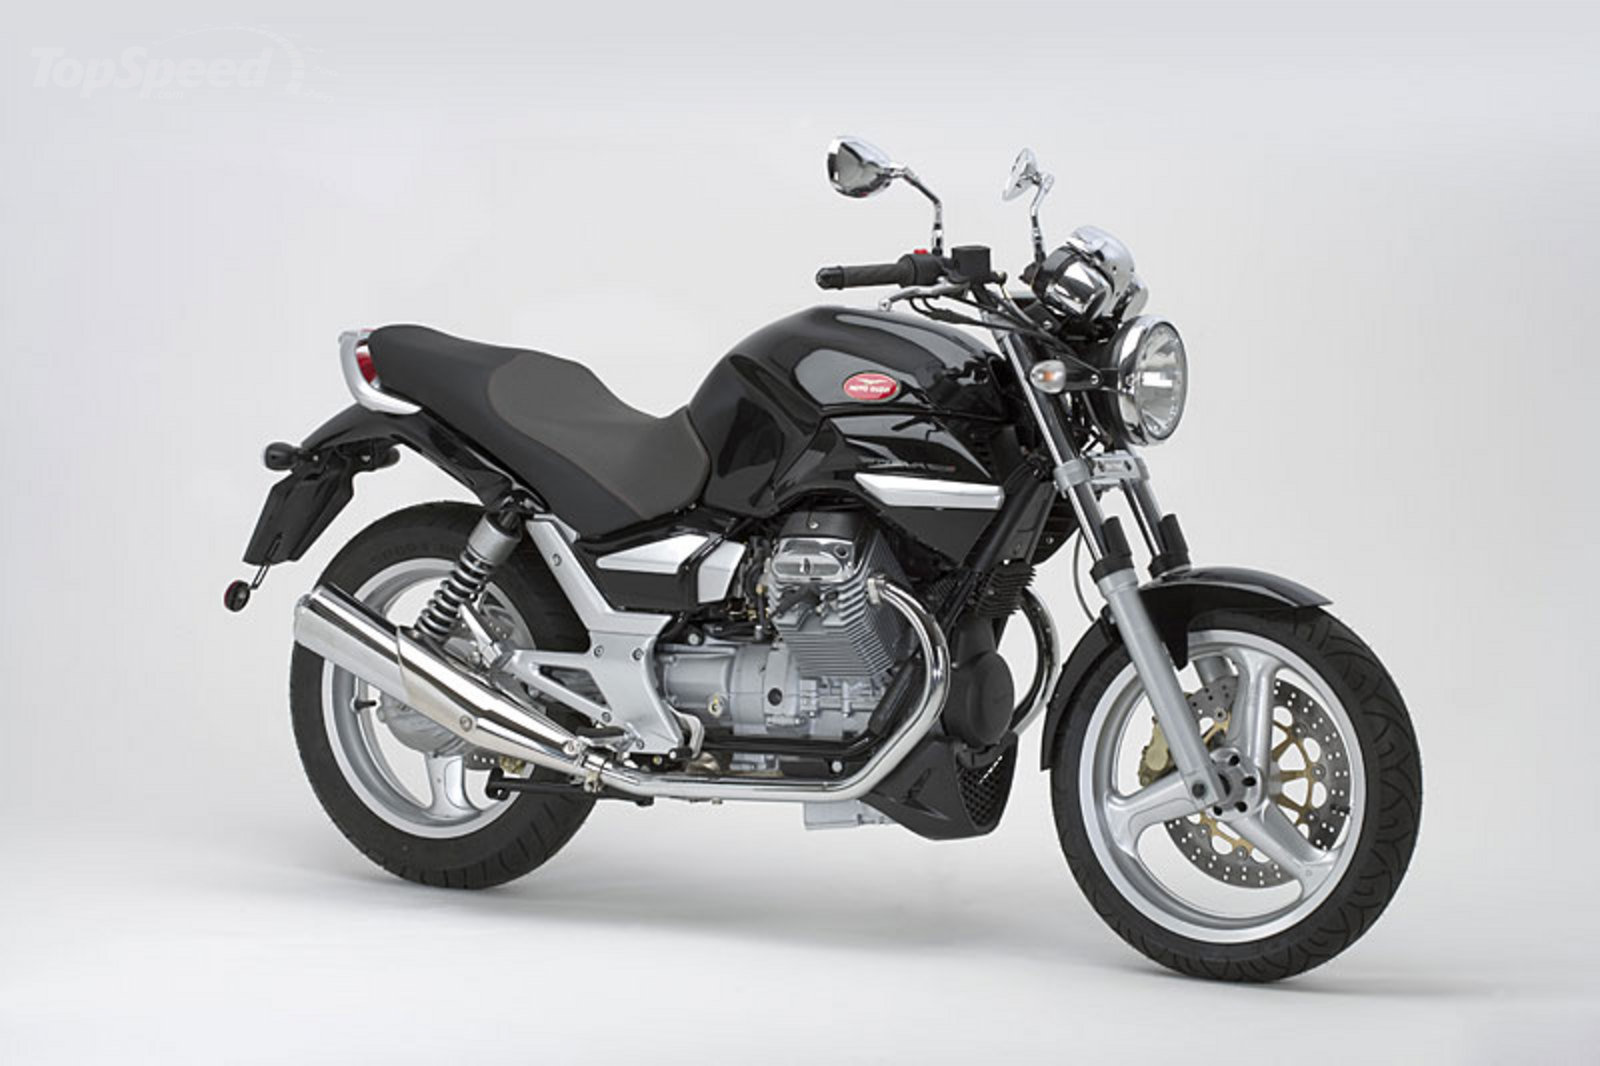 2006 moto guzzi breva 750 review top speed. Black Bedroom Furniture Sets. Home Design Ideas